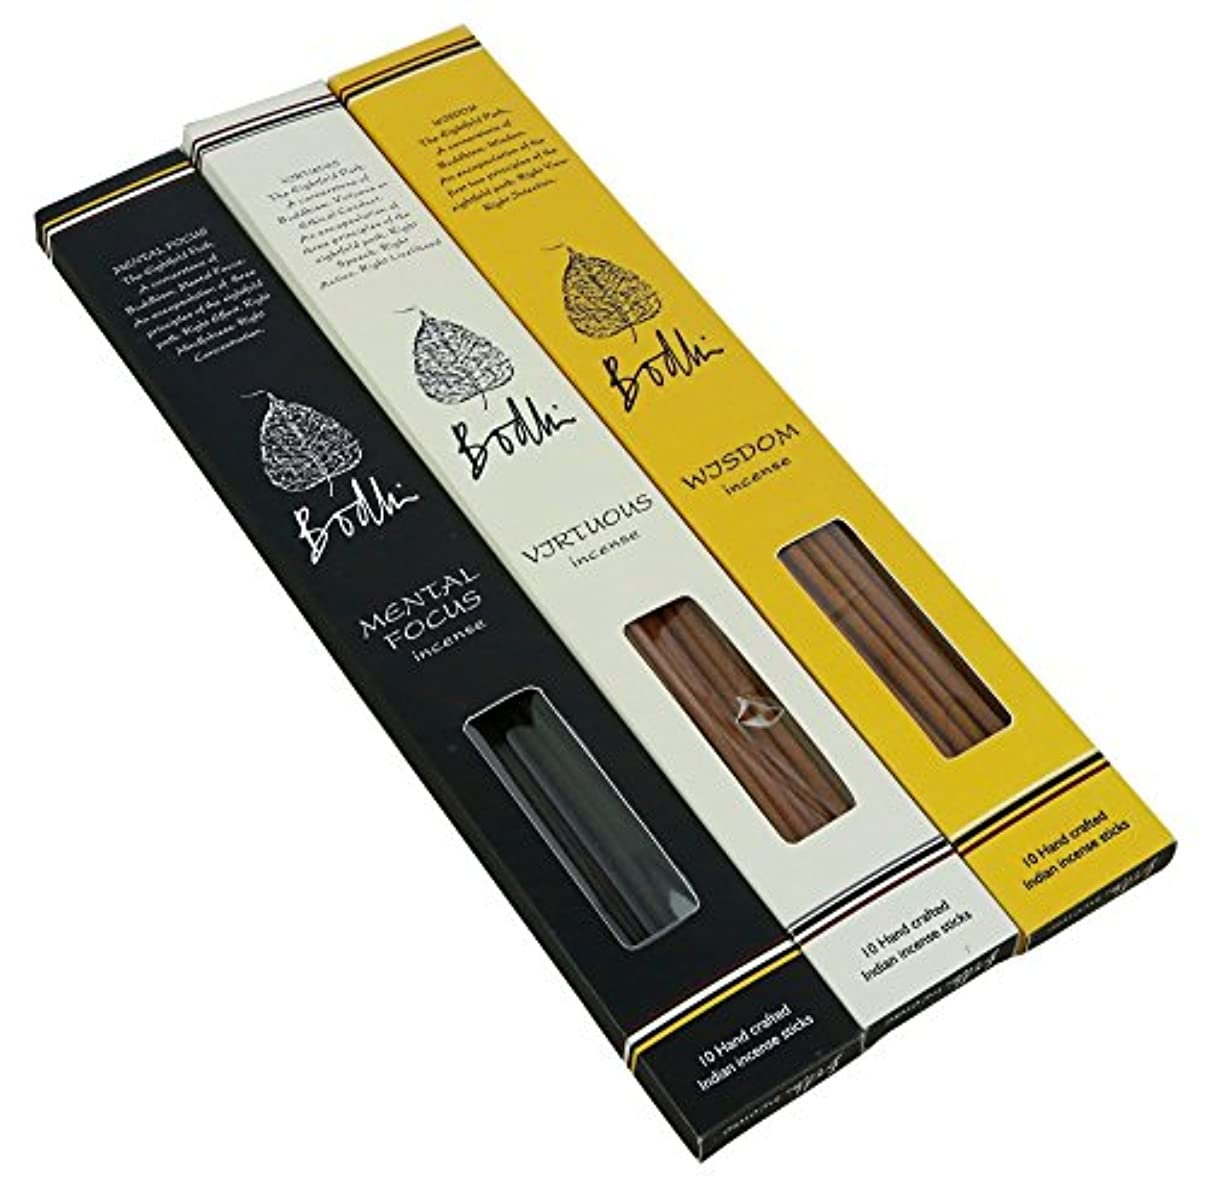 制約不良品ブラザーBodhi Buddhist Incense Sticks forホームTemple – Virtuous、知恵とMentalフォーカスFragrances、手作り合計30 Sticks